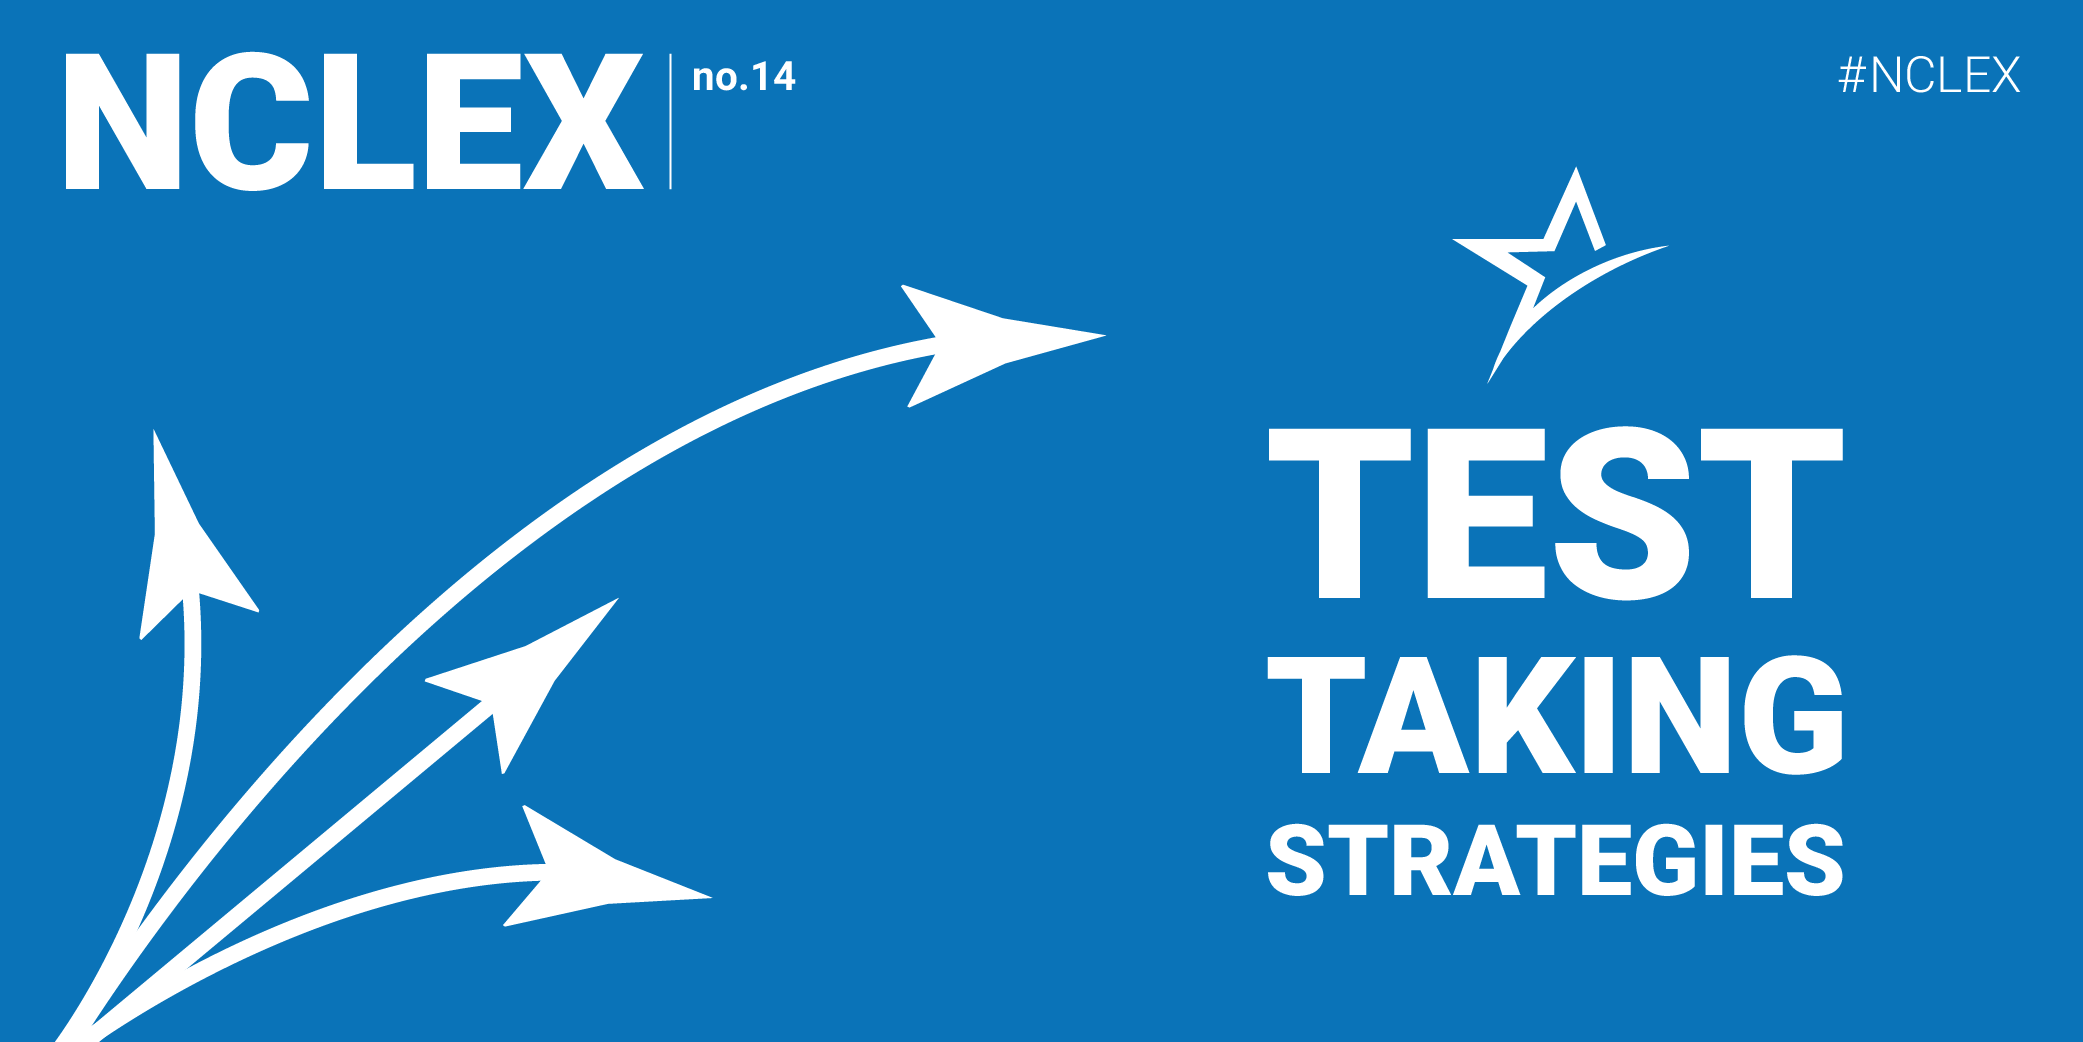 Nclex Study Tips For Your Test Taking Strategy